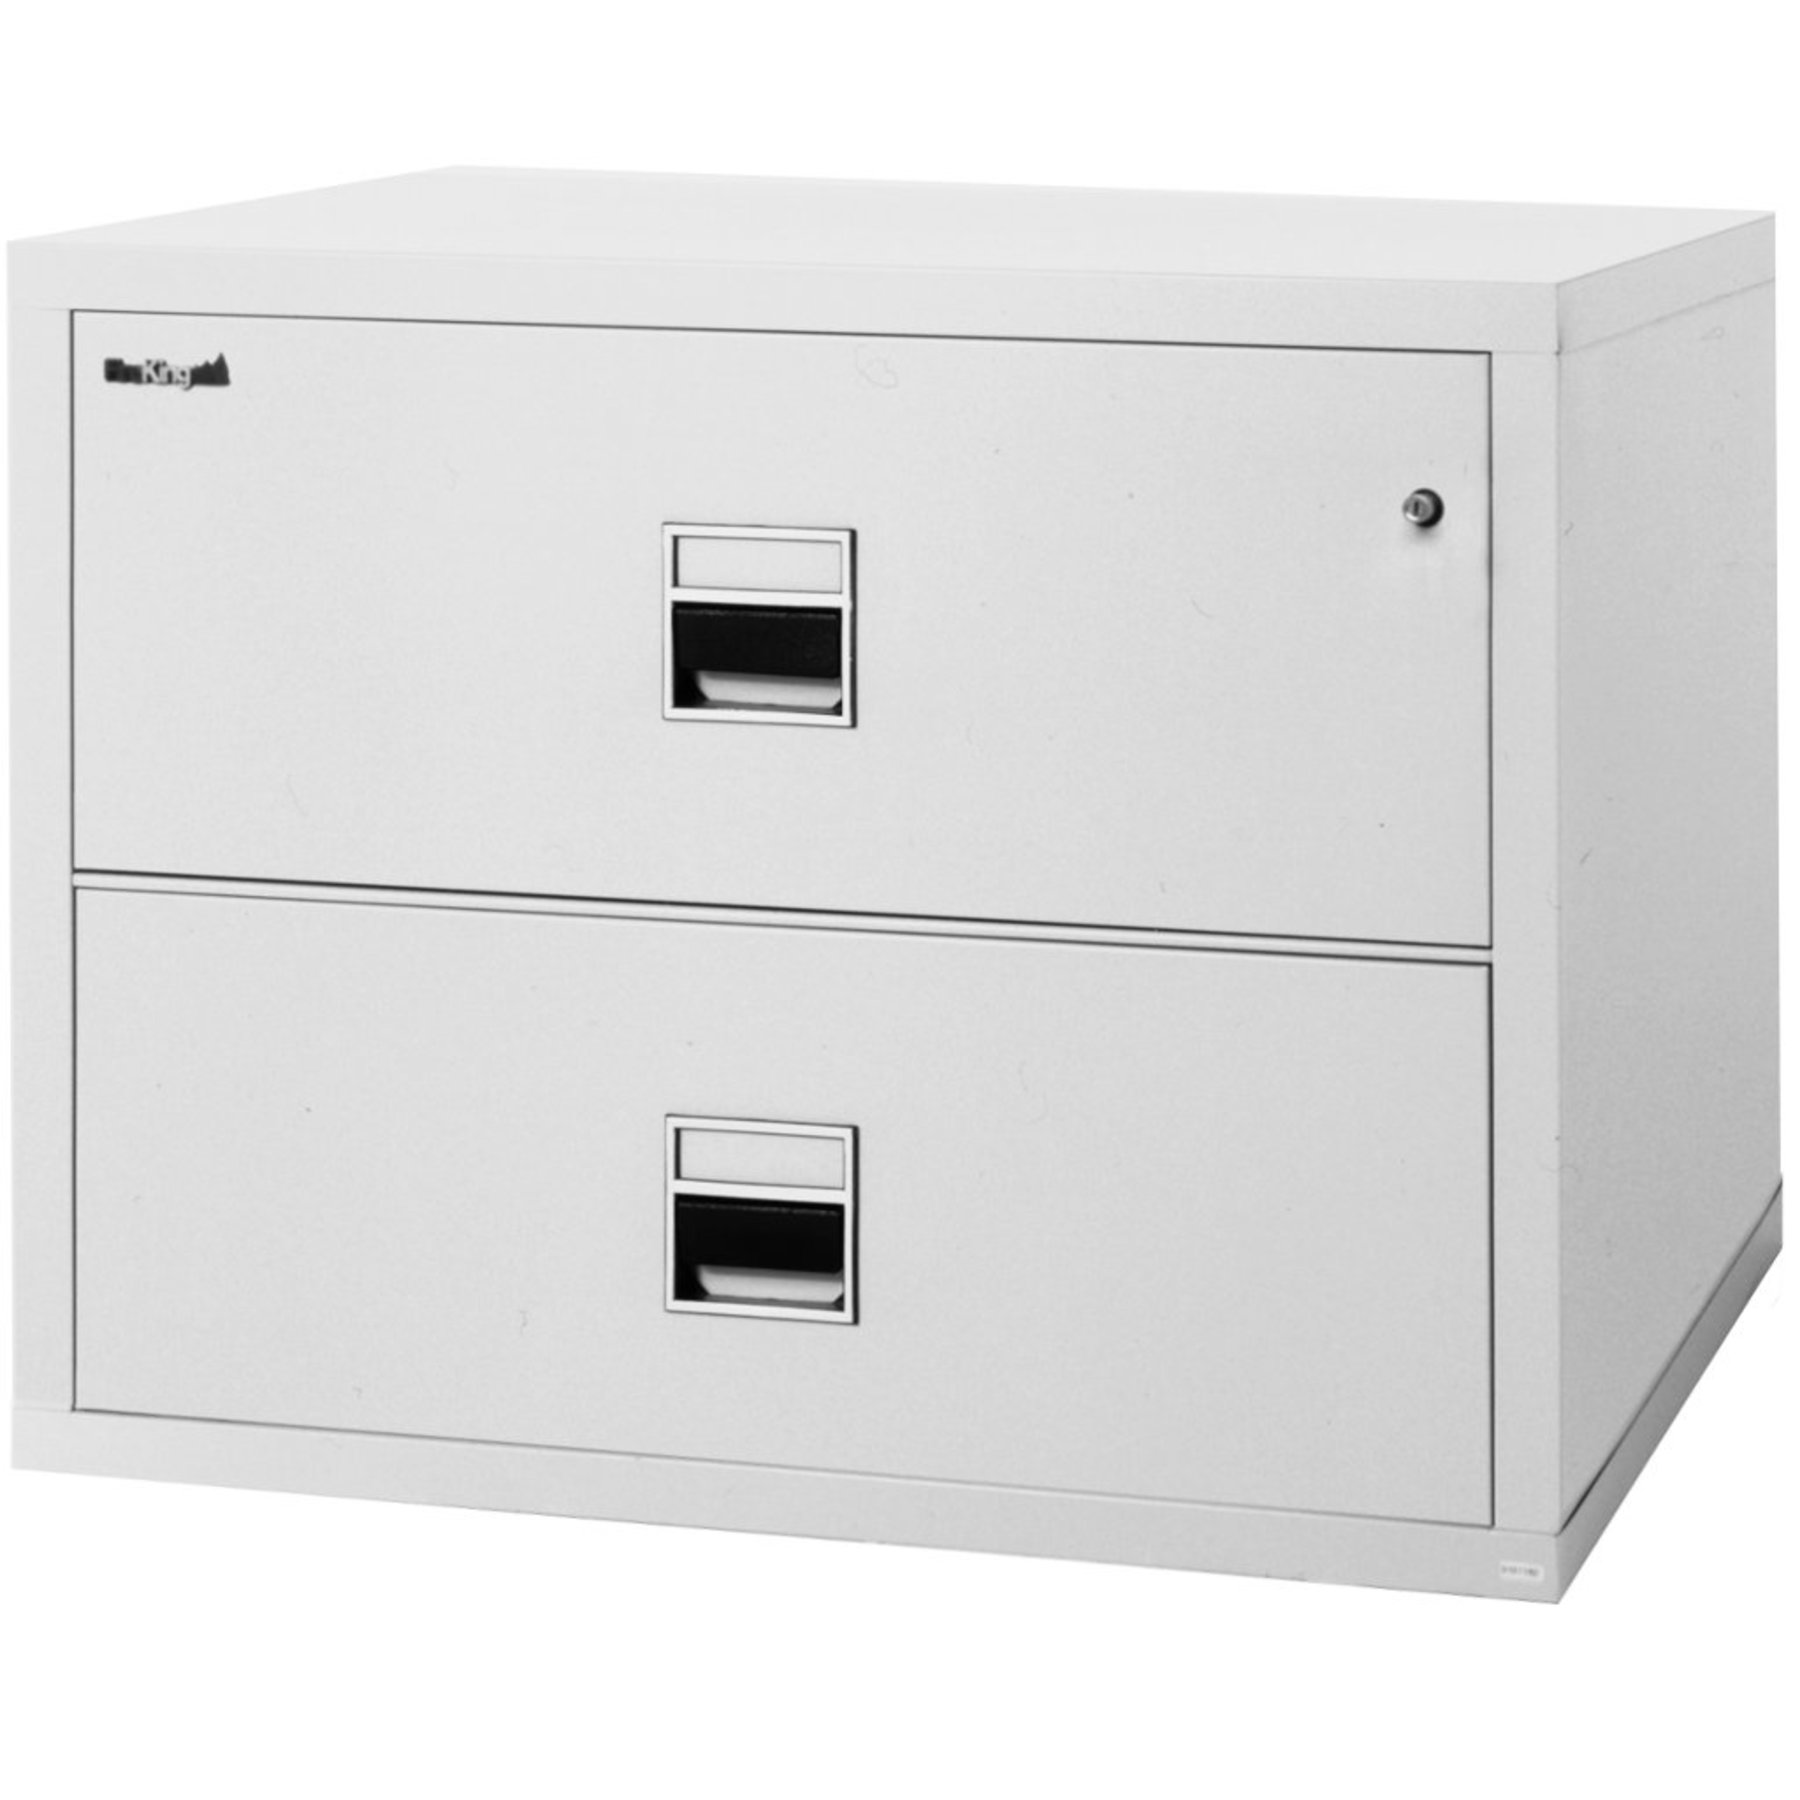 FireKing Lateral MLT2 Fire Resistant File Cabinet